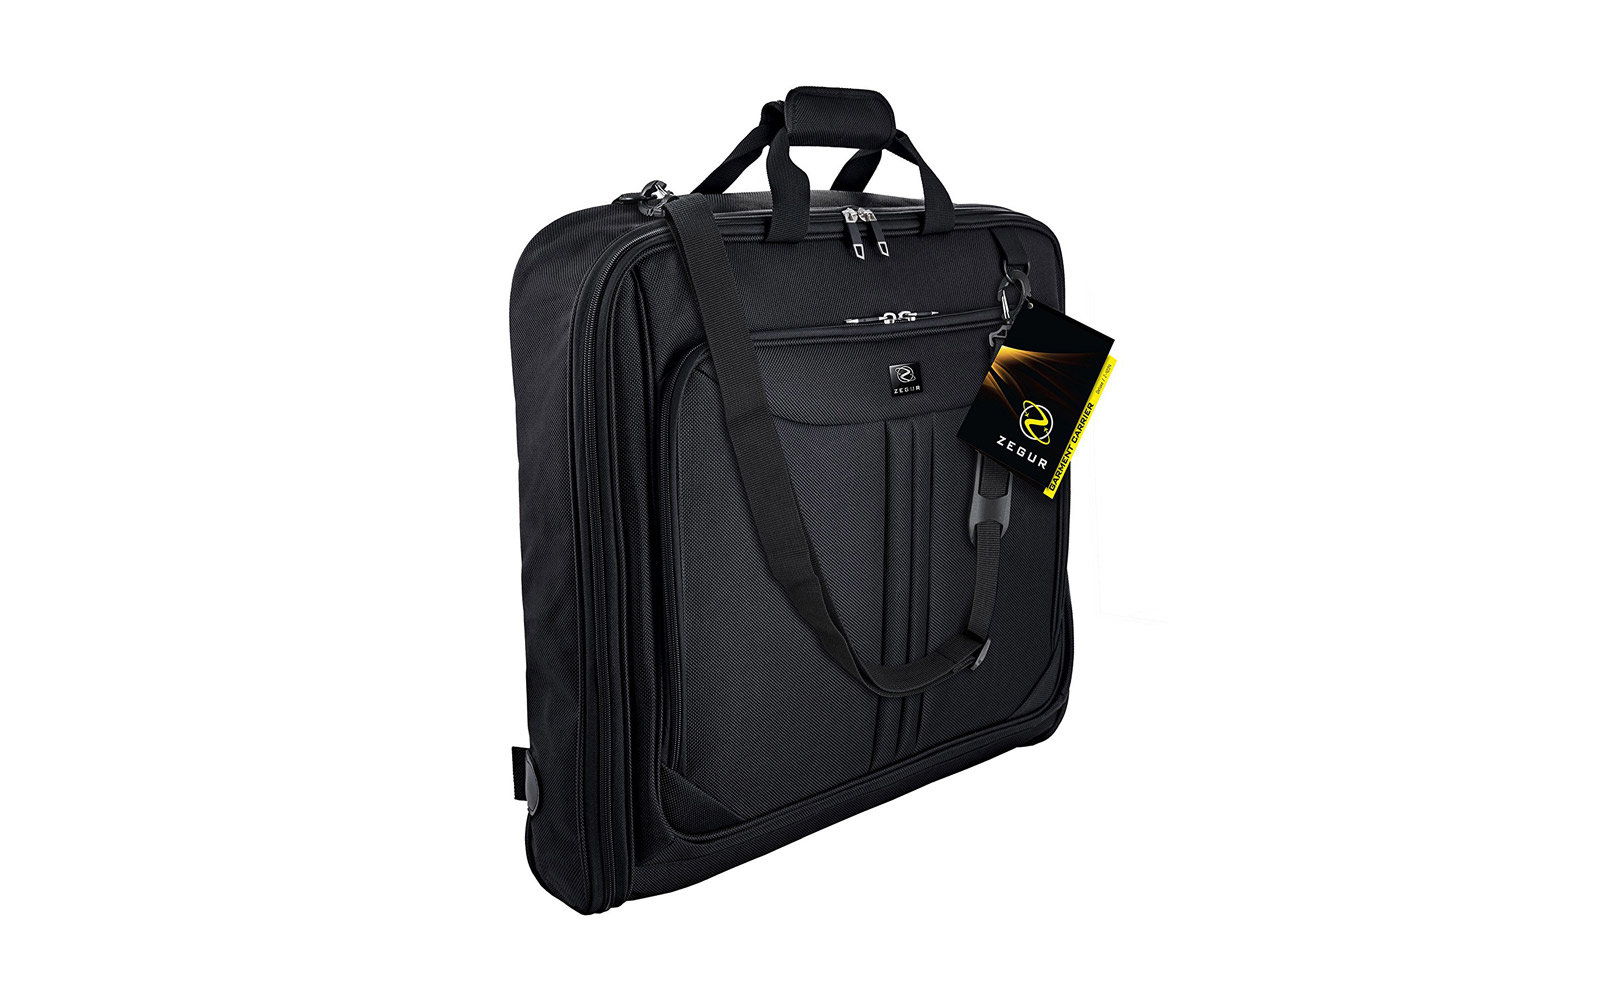 Zegur Carry On Garment Bag